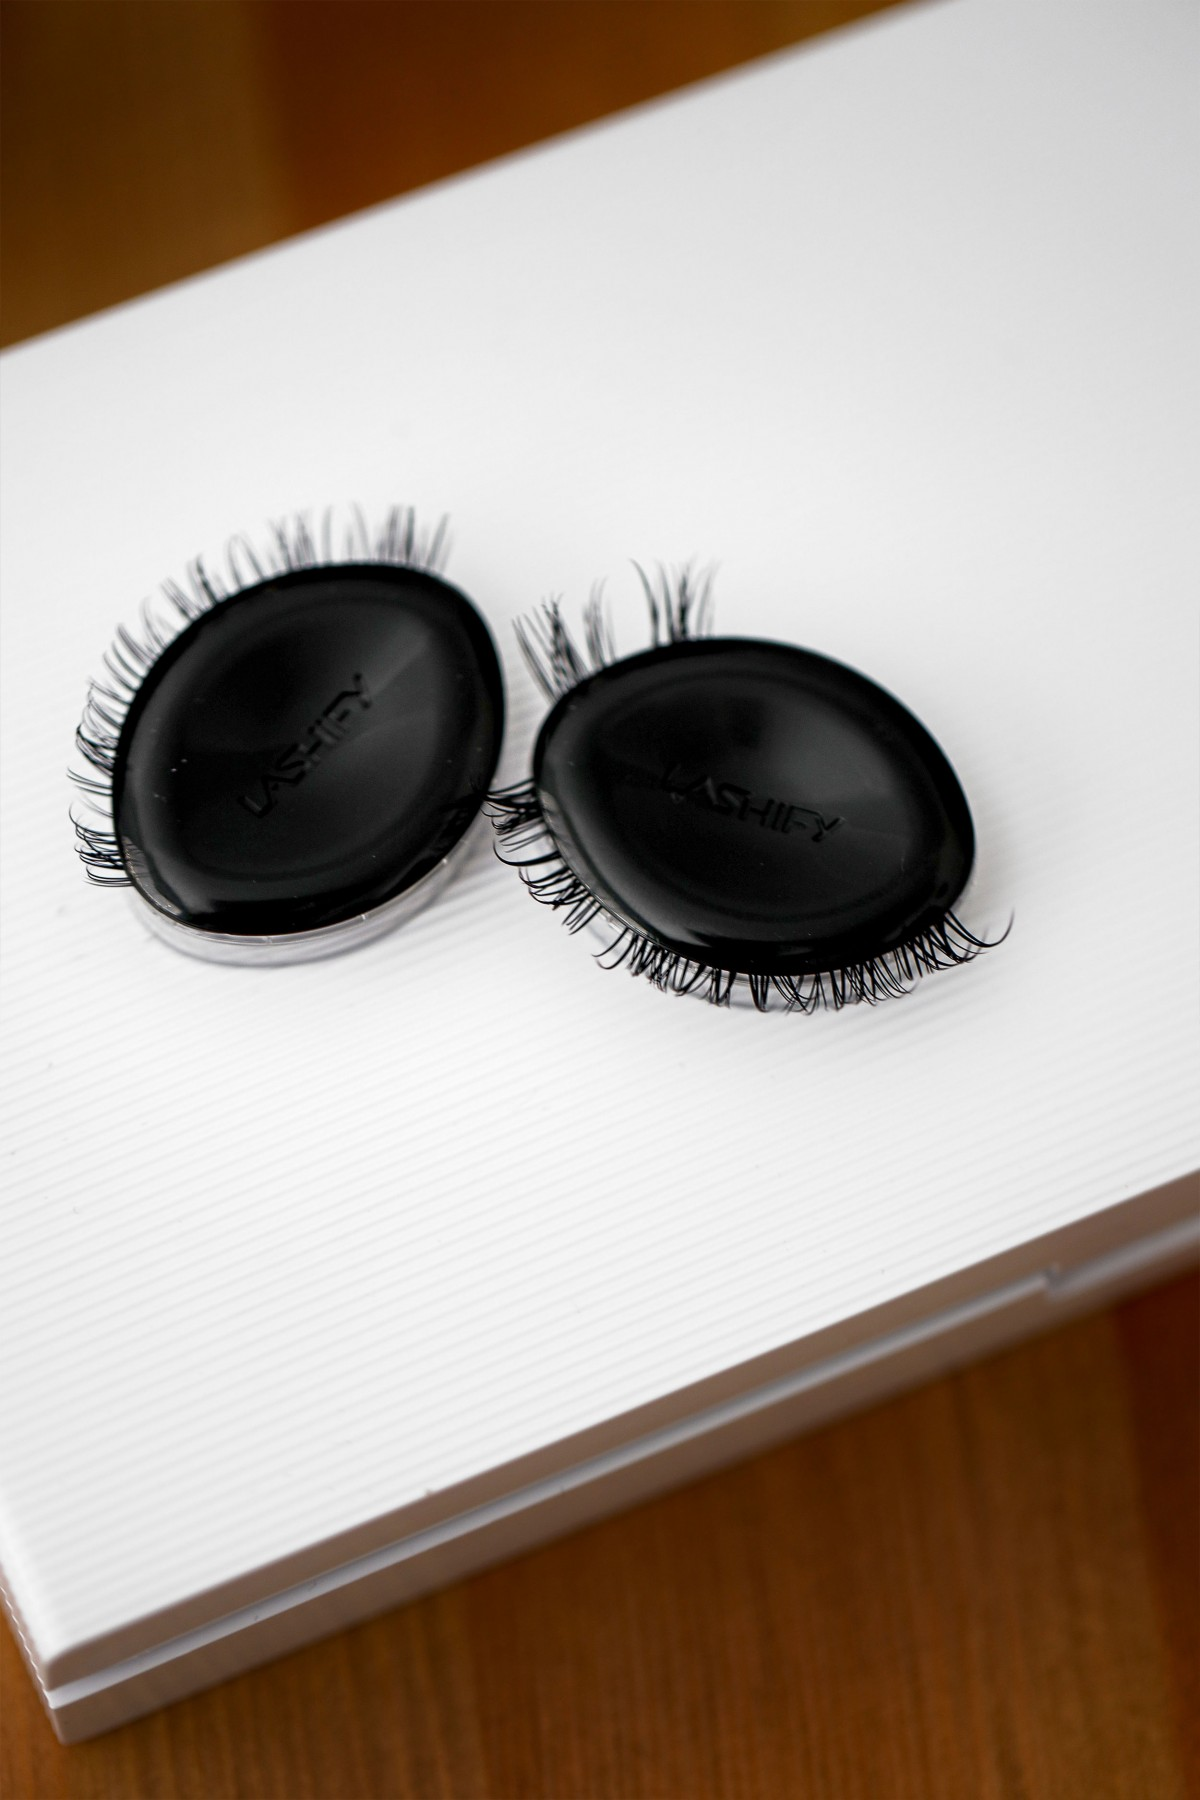 Lashify review DIY Lash Extentions